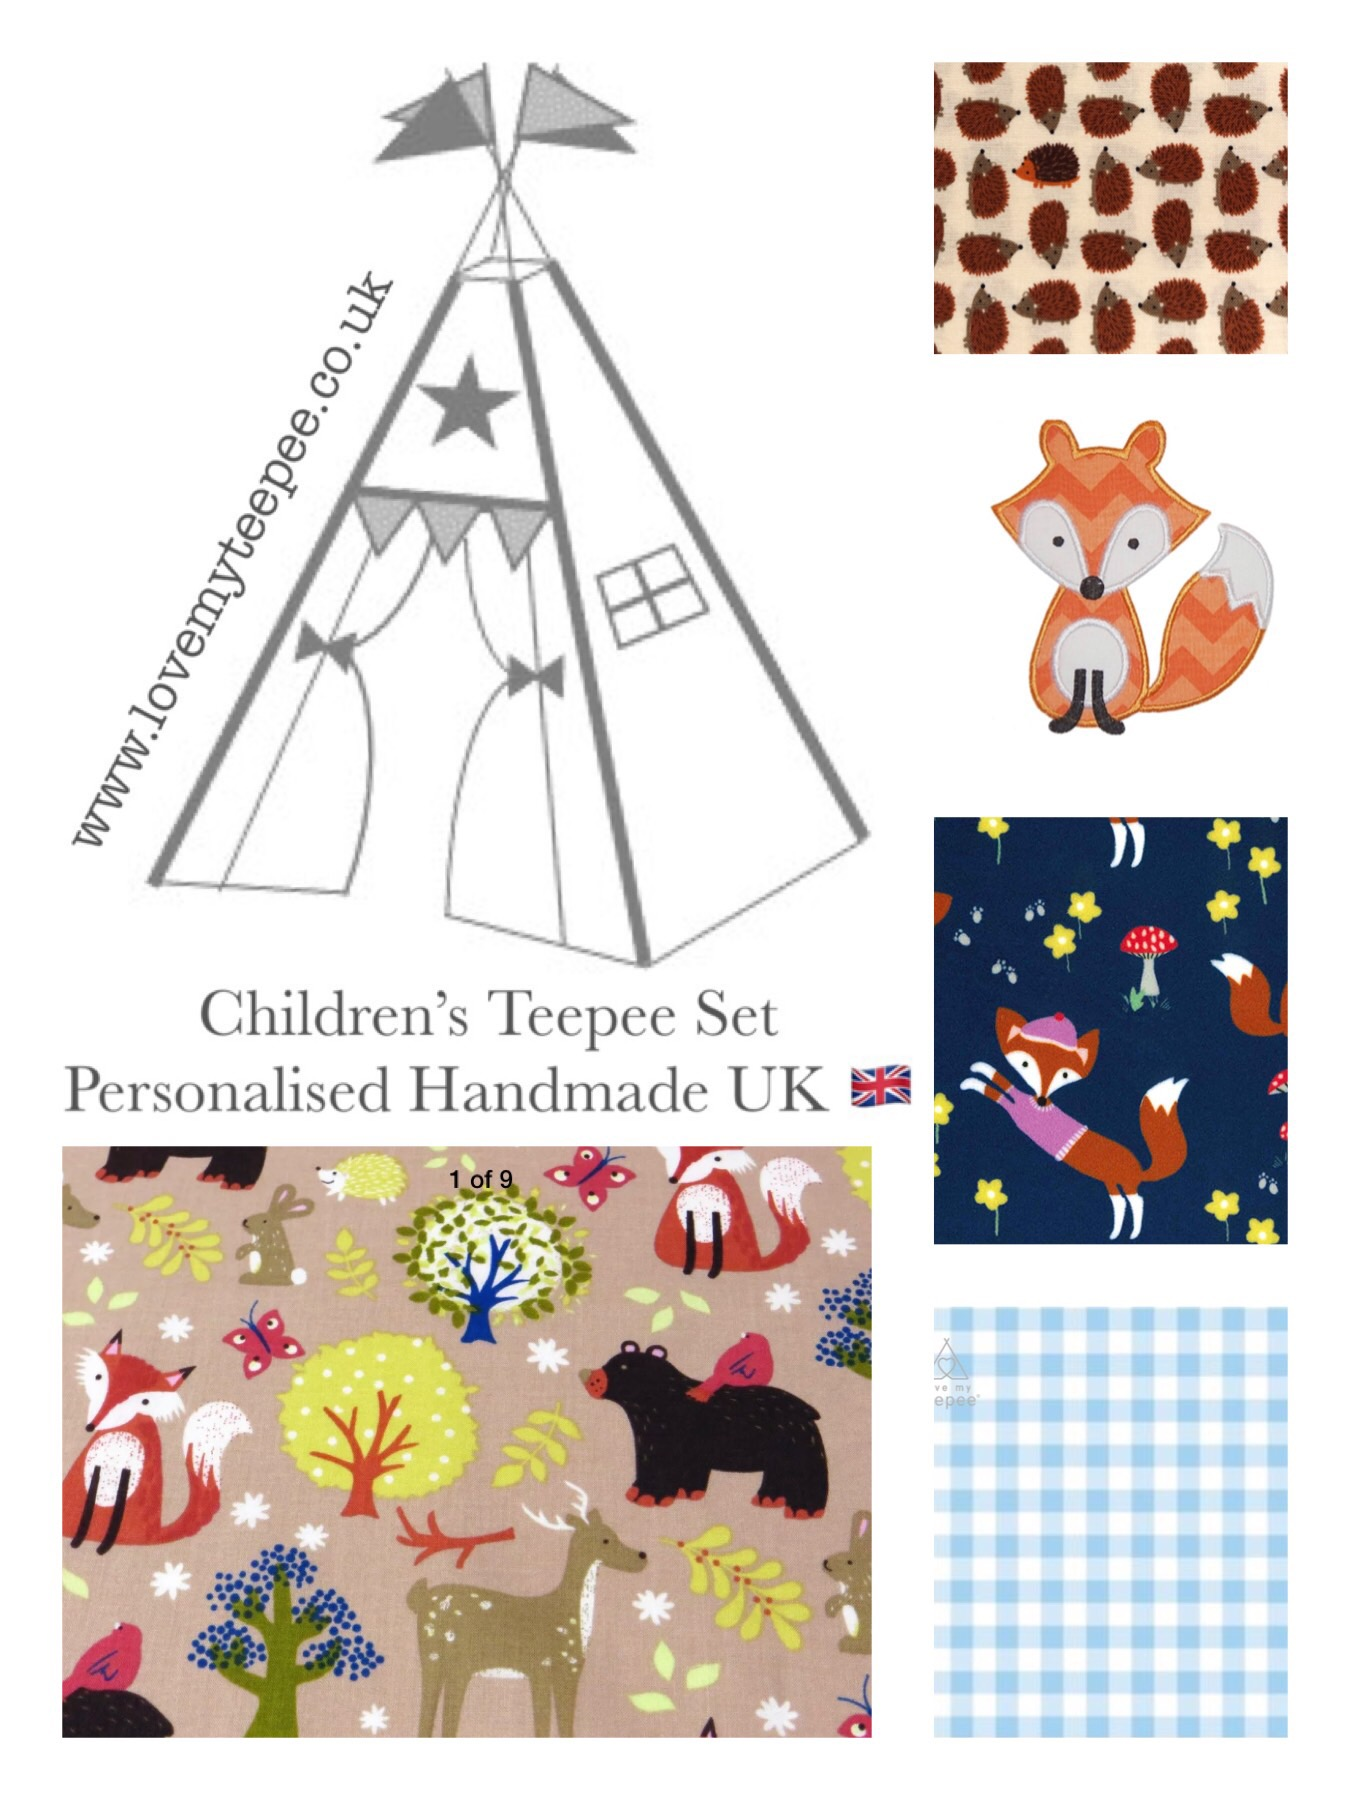 Fox Amp Forest Friends Teepee Tent Mat Cushions Kids Personalised From Love My Teepee